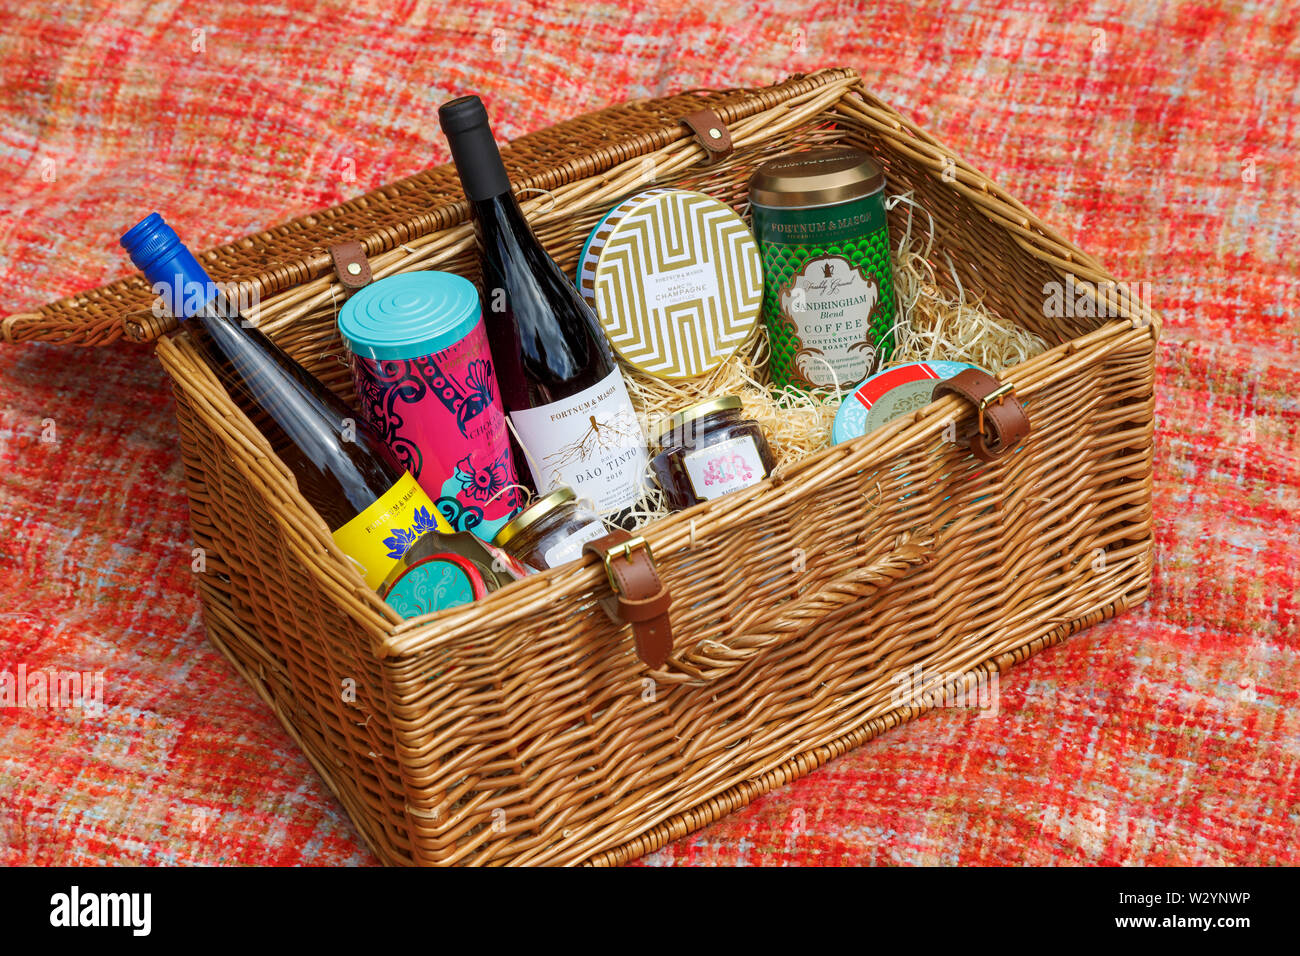 Luxury lifestyle: Fortnum & Mason wicker picnic hamper (the Grosvenor Hamper) with an open displaying contents on a red woollen rug - Stock Image